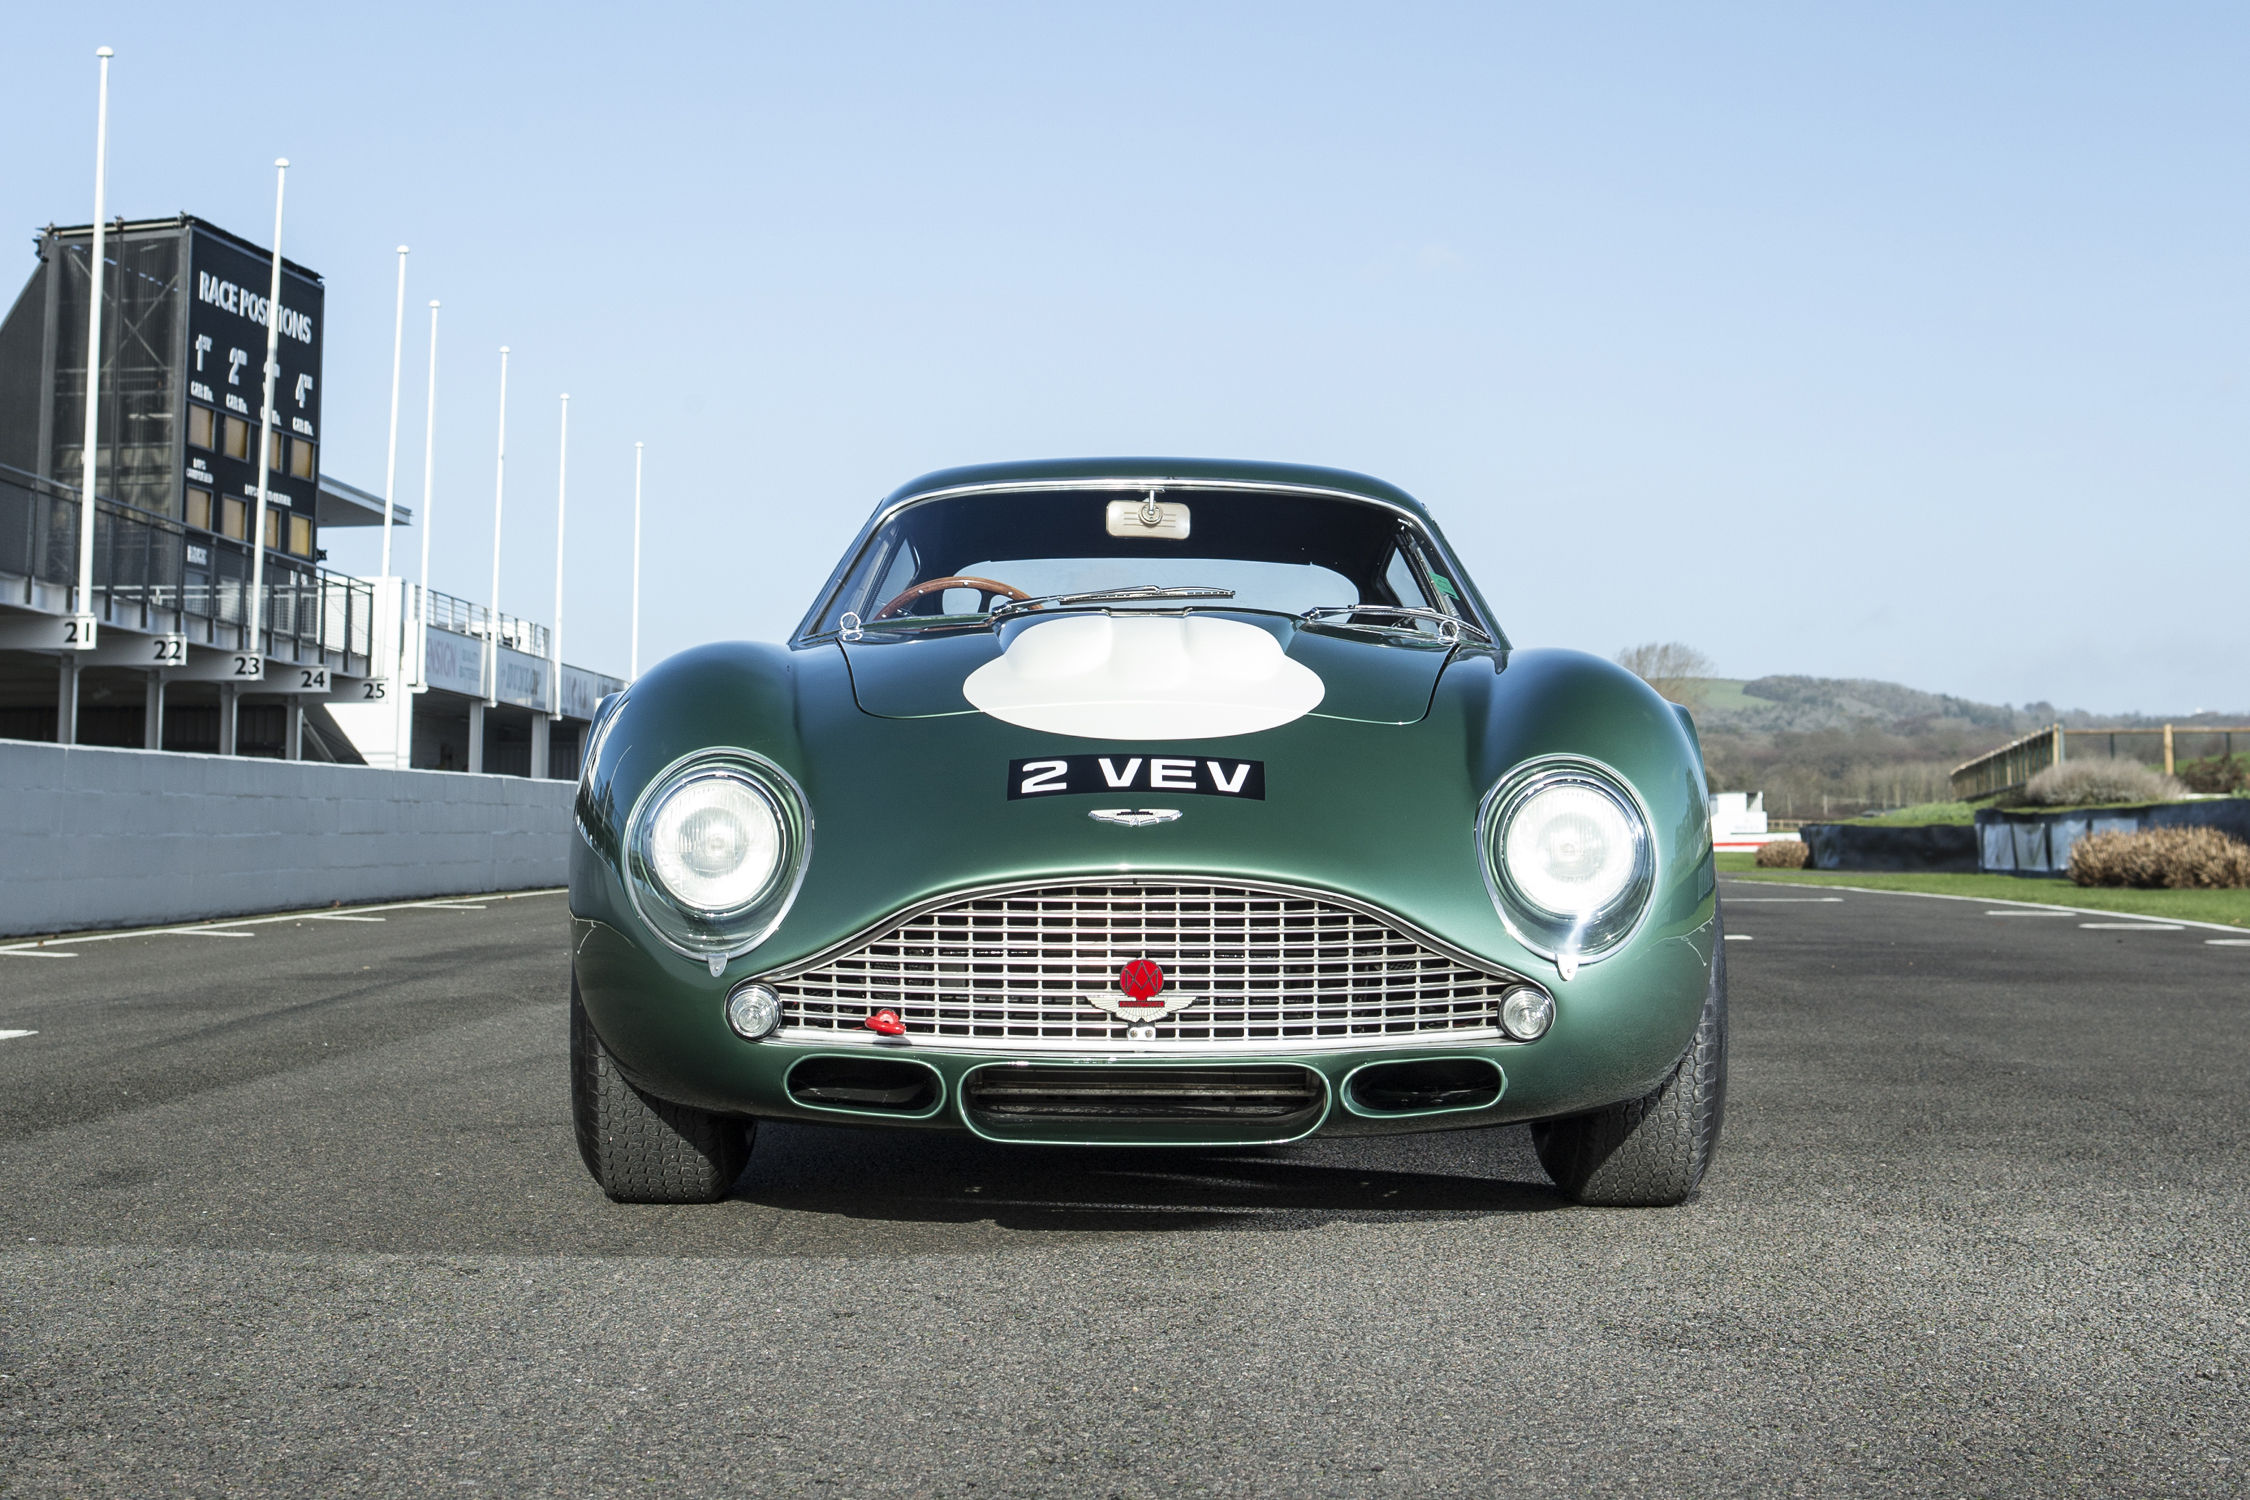 bonhams aston martin db4gt zagato 1961 actualit automobile motorlegend. Black Bedroom Furniture Sets. Home Design Ideas